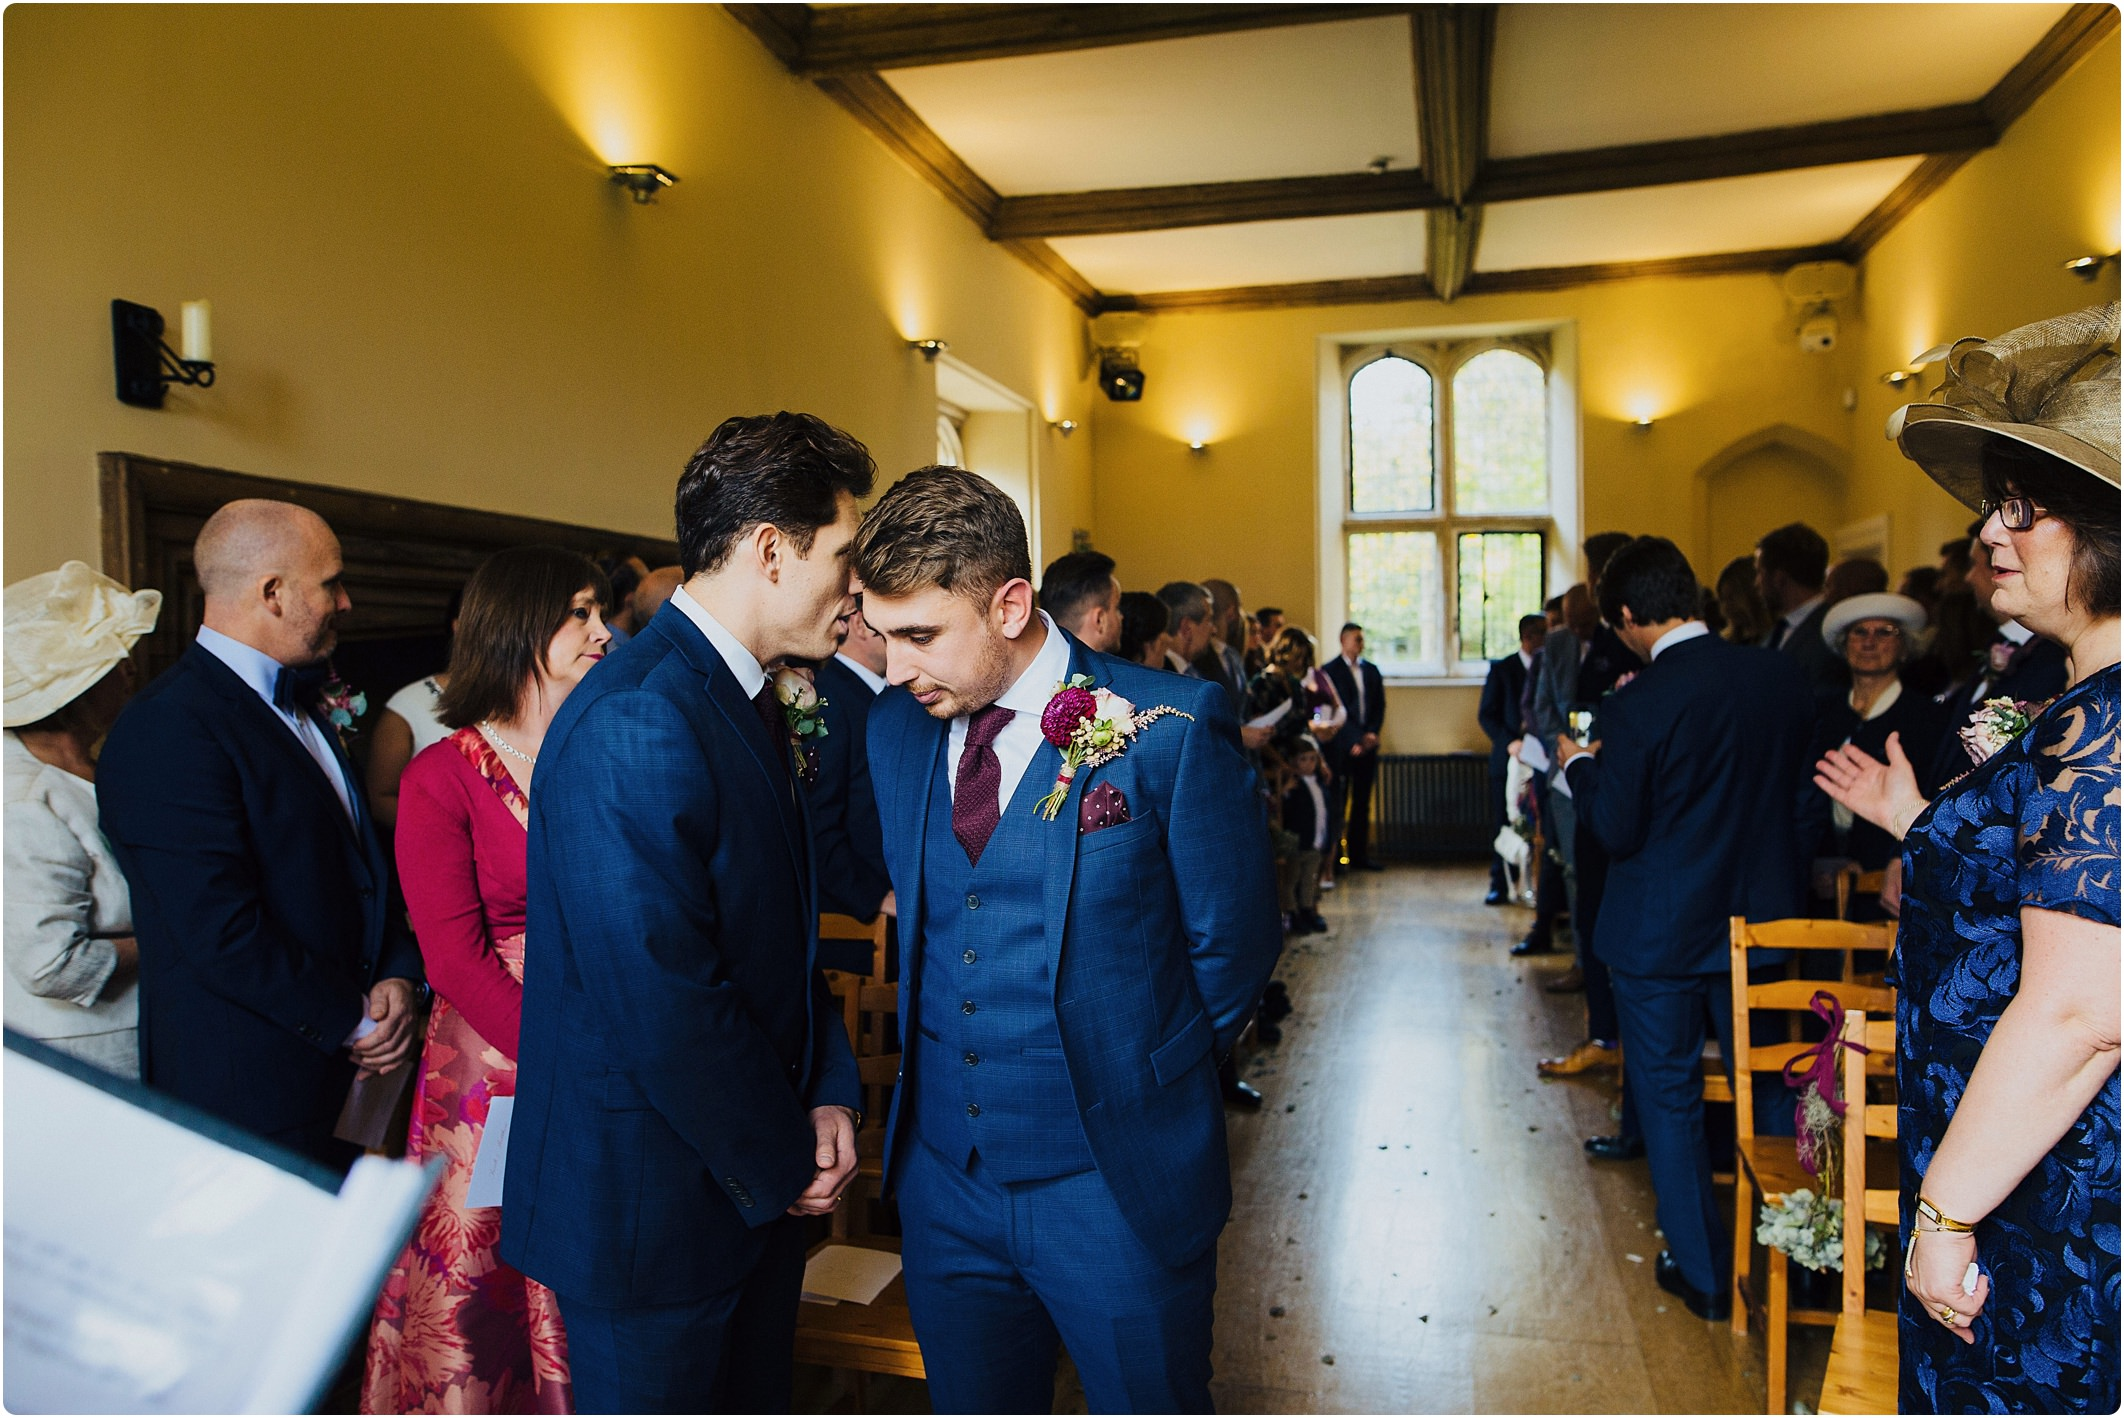 notley abbey indoor wedding ceremony